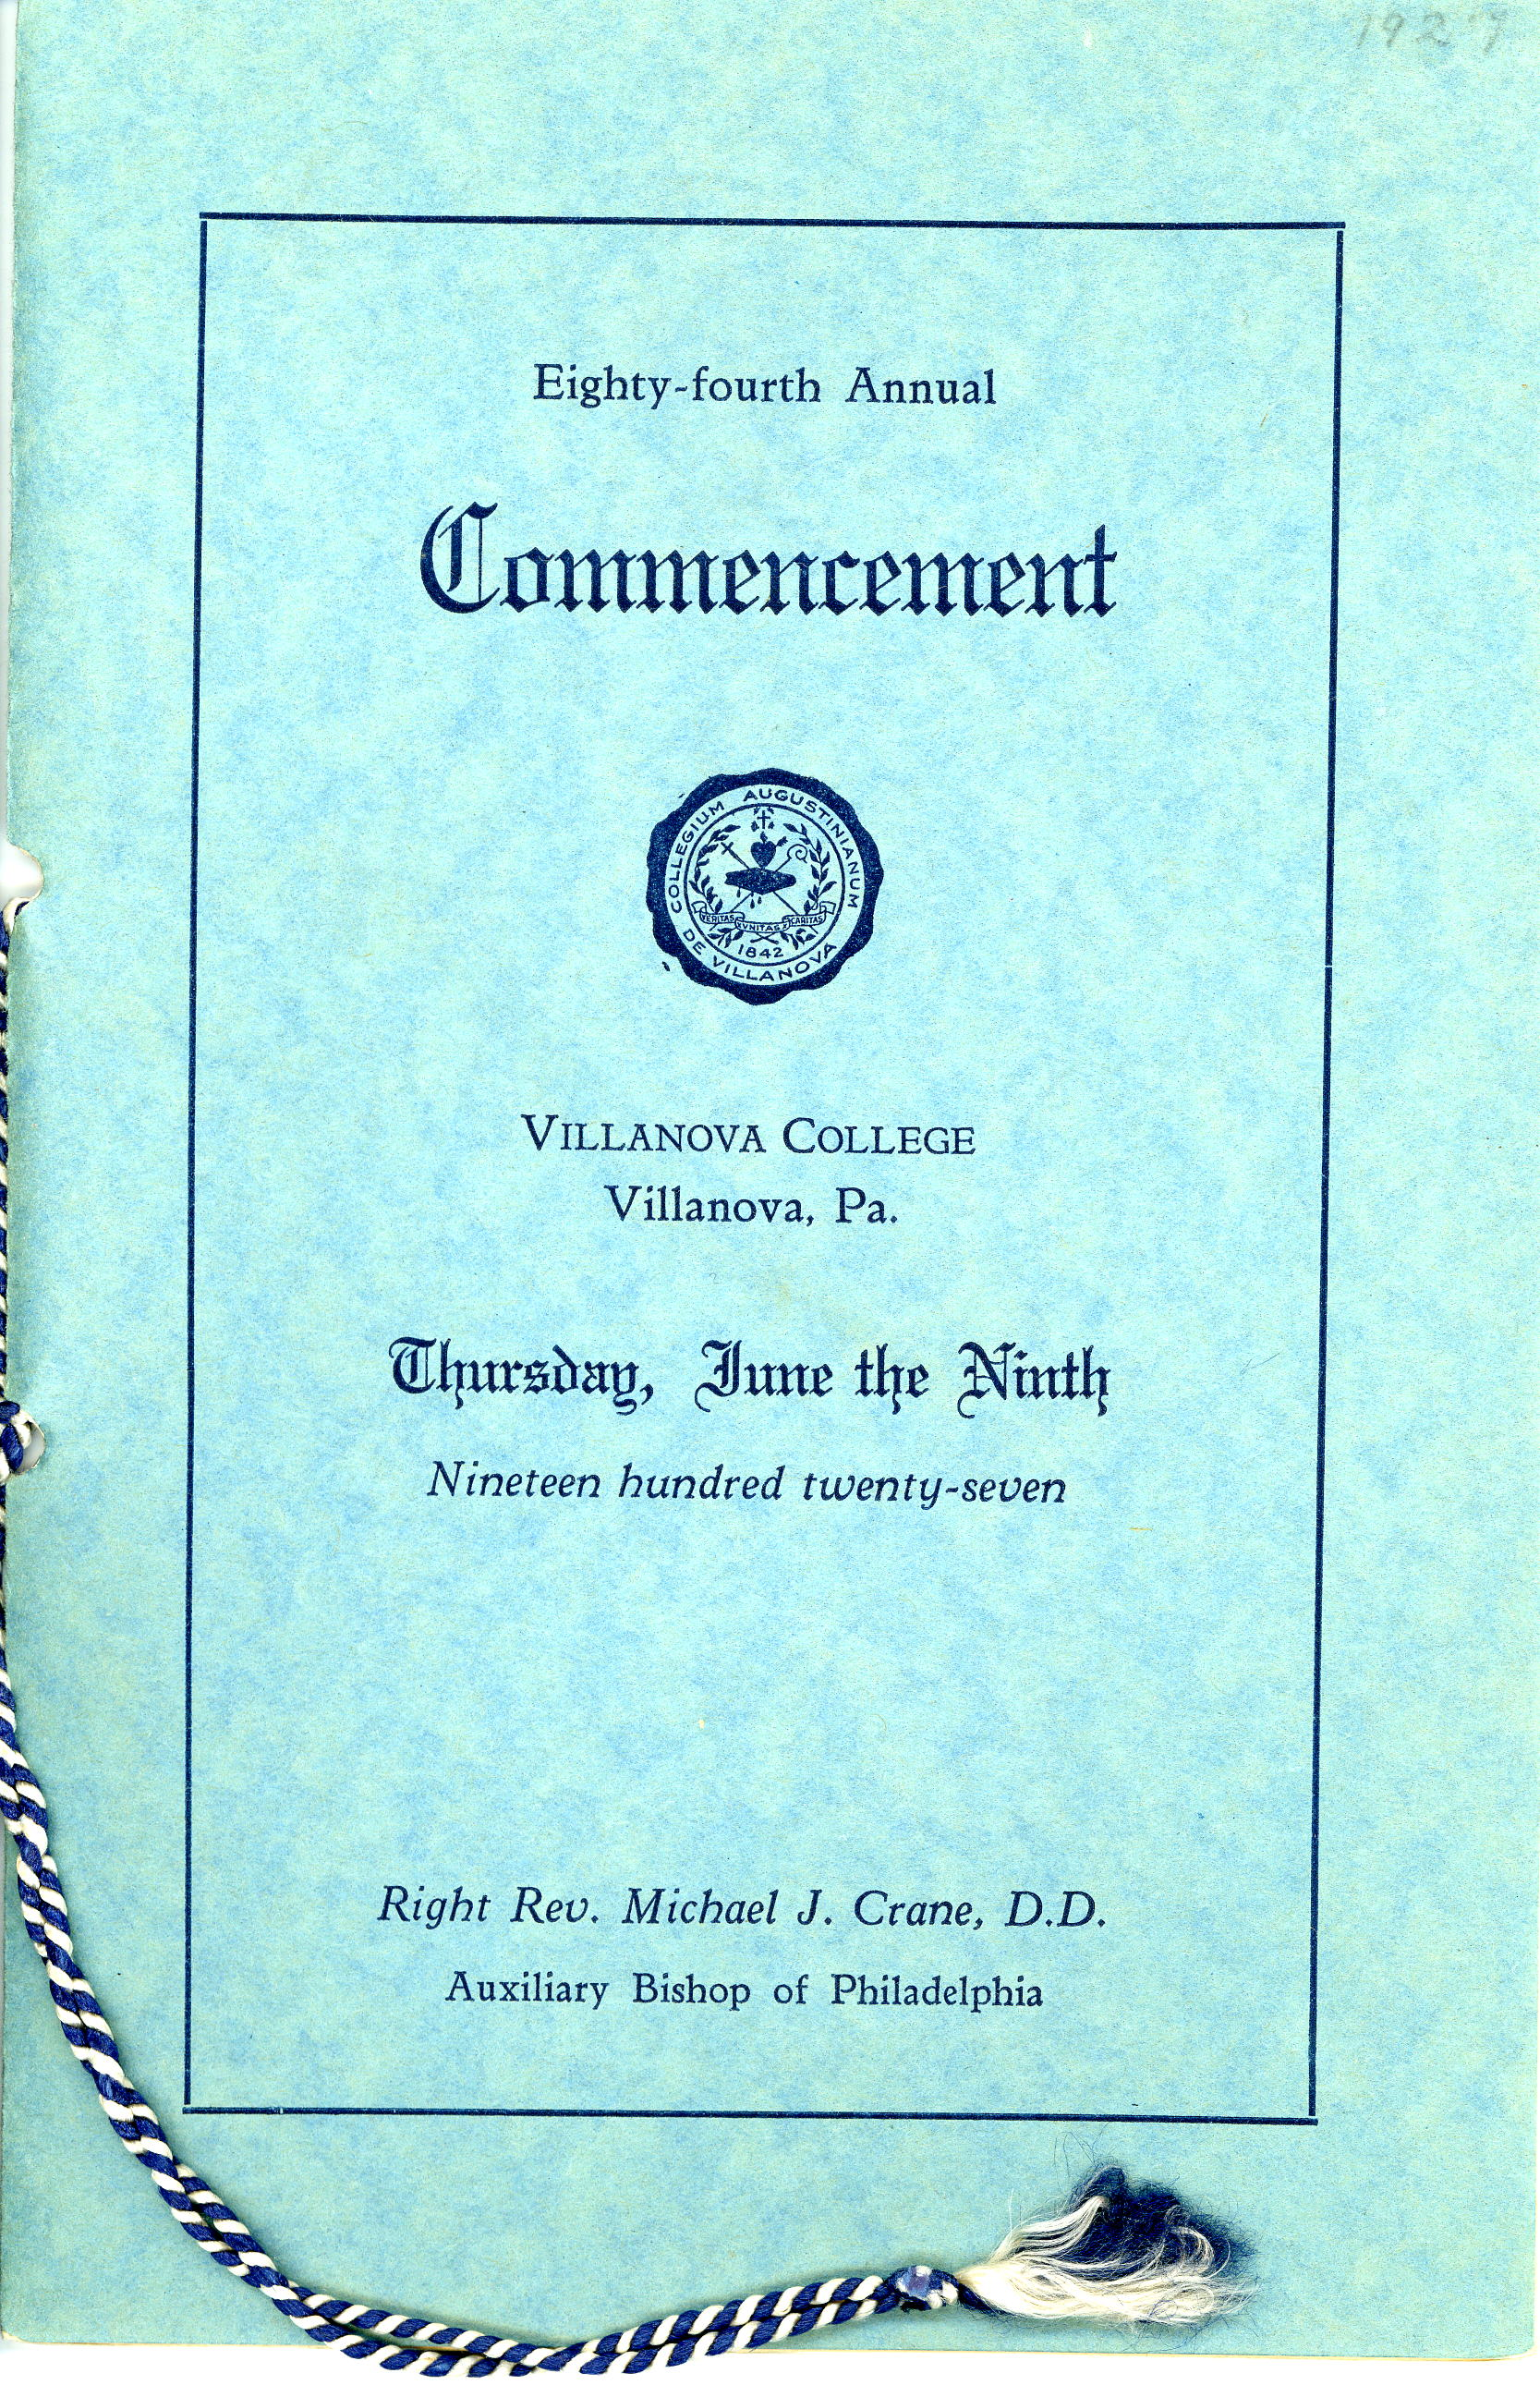 Commencement Program, 9 June 1927